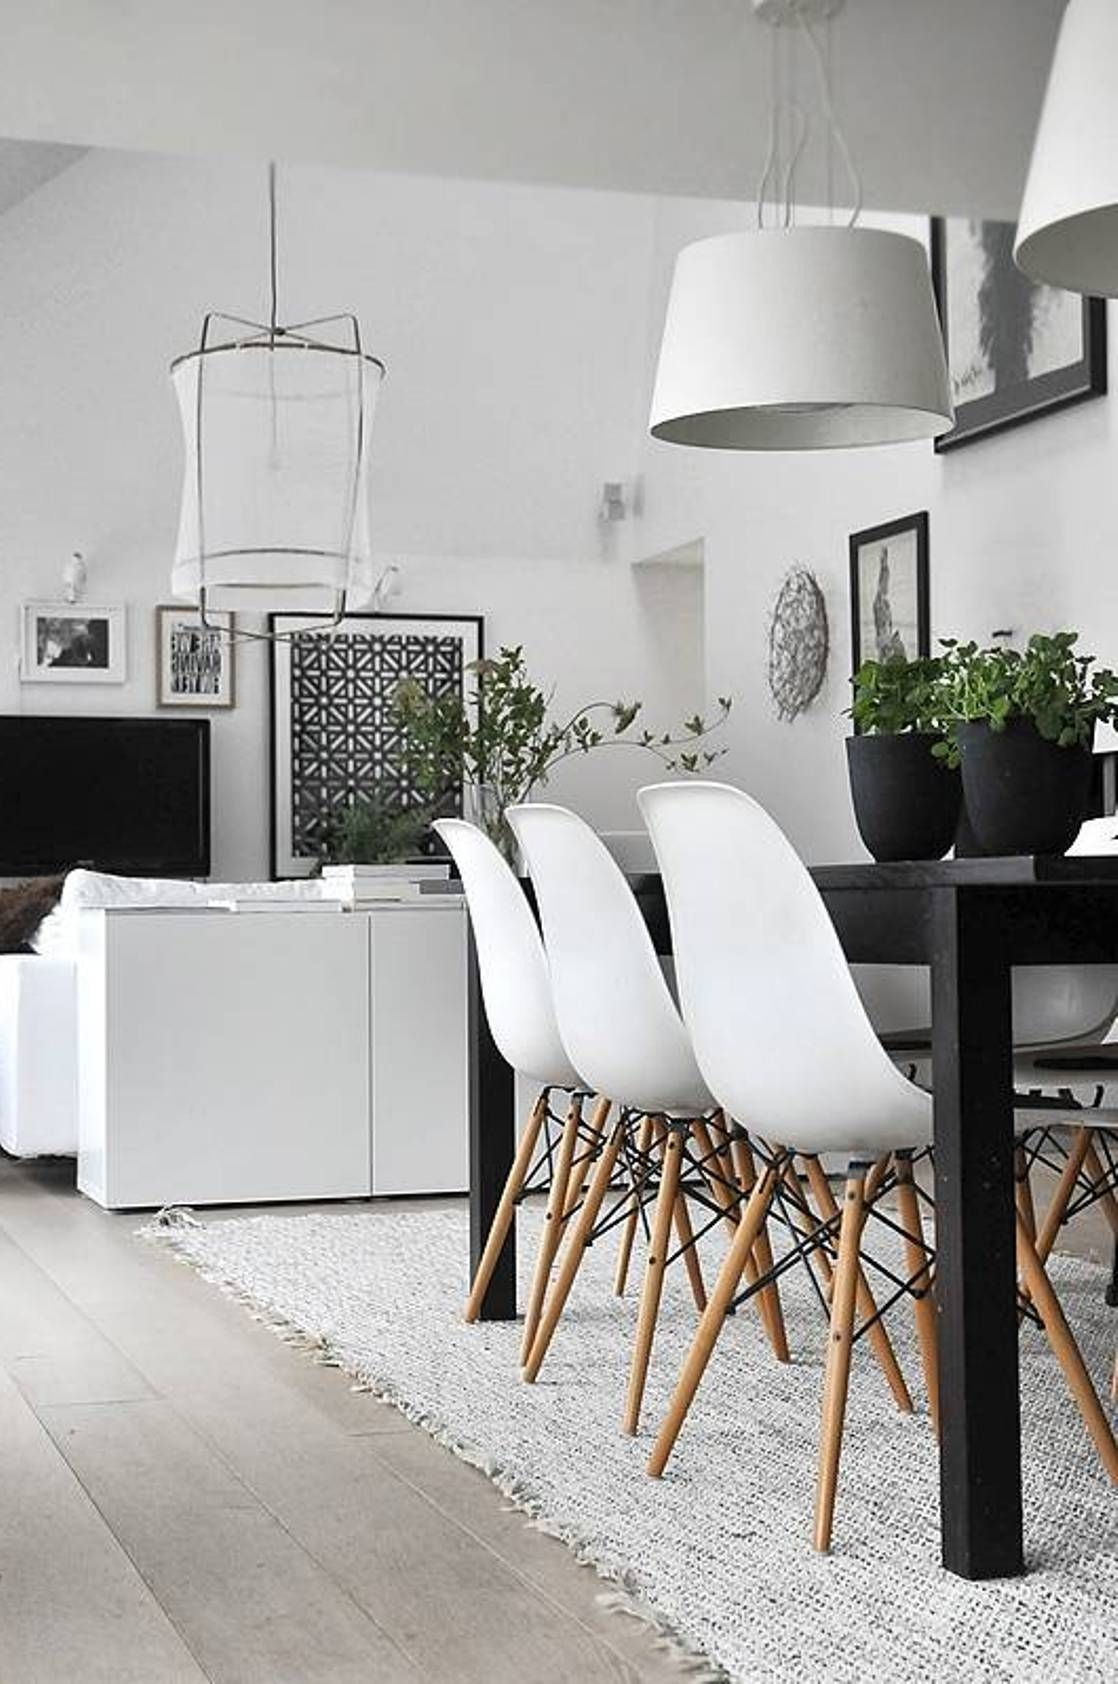 Awesome Swedish Design : Swedish Design for The Homes Gallery |  DesignArtHouse.com - Home